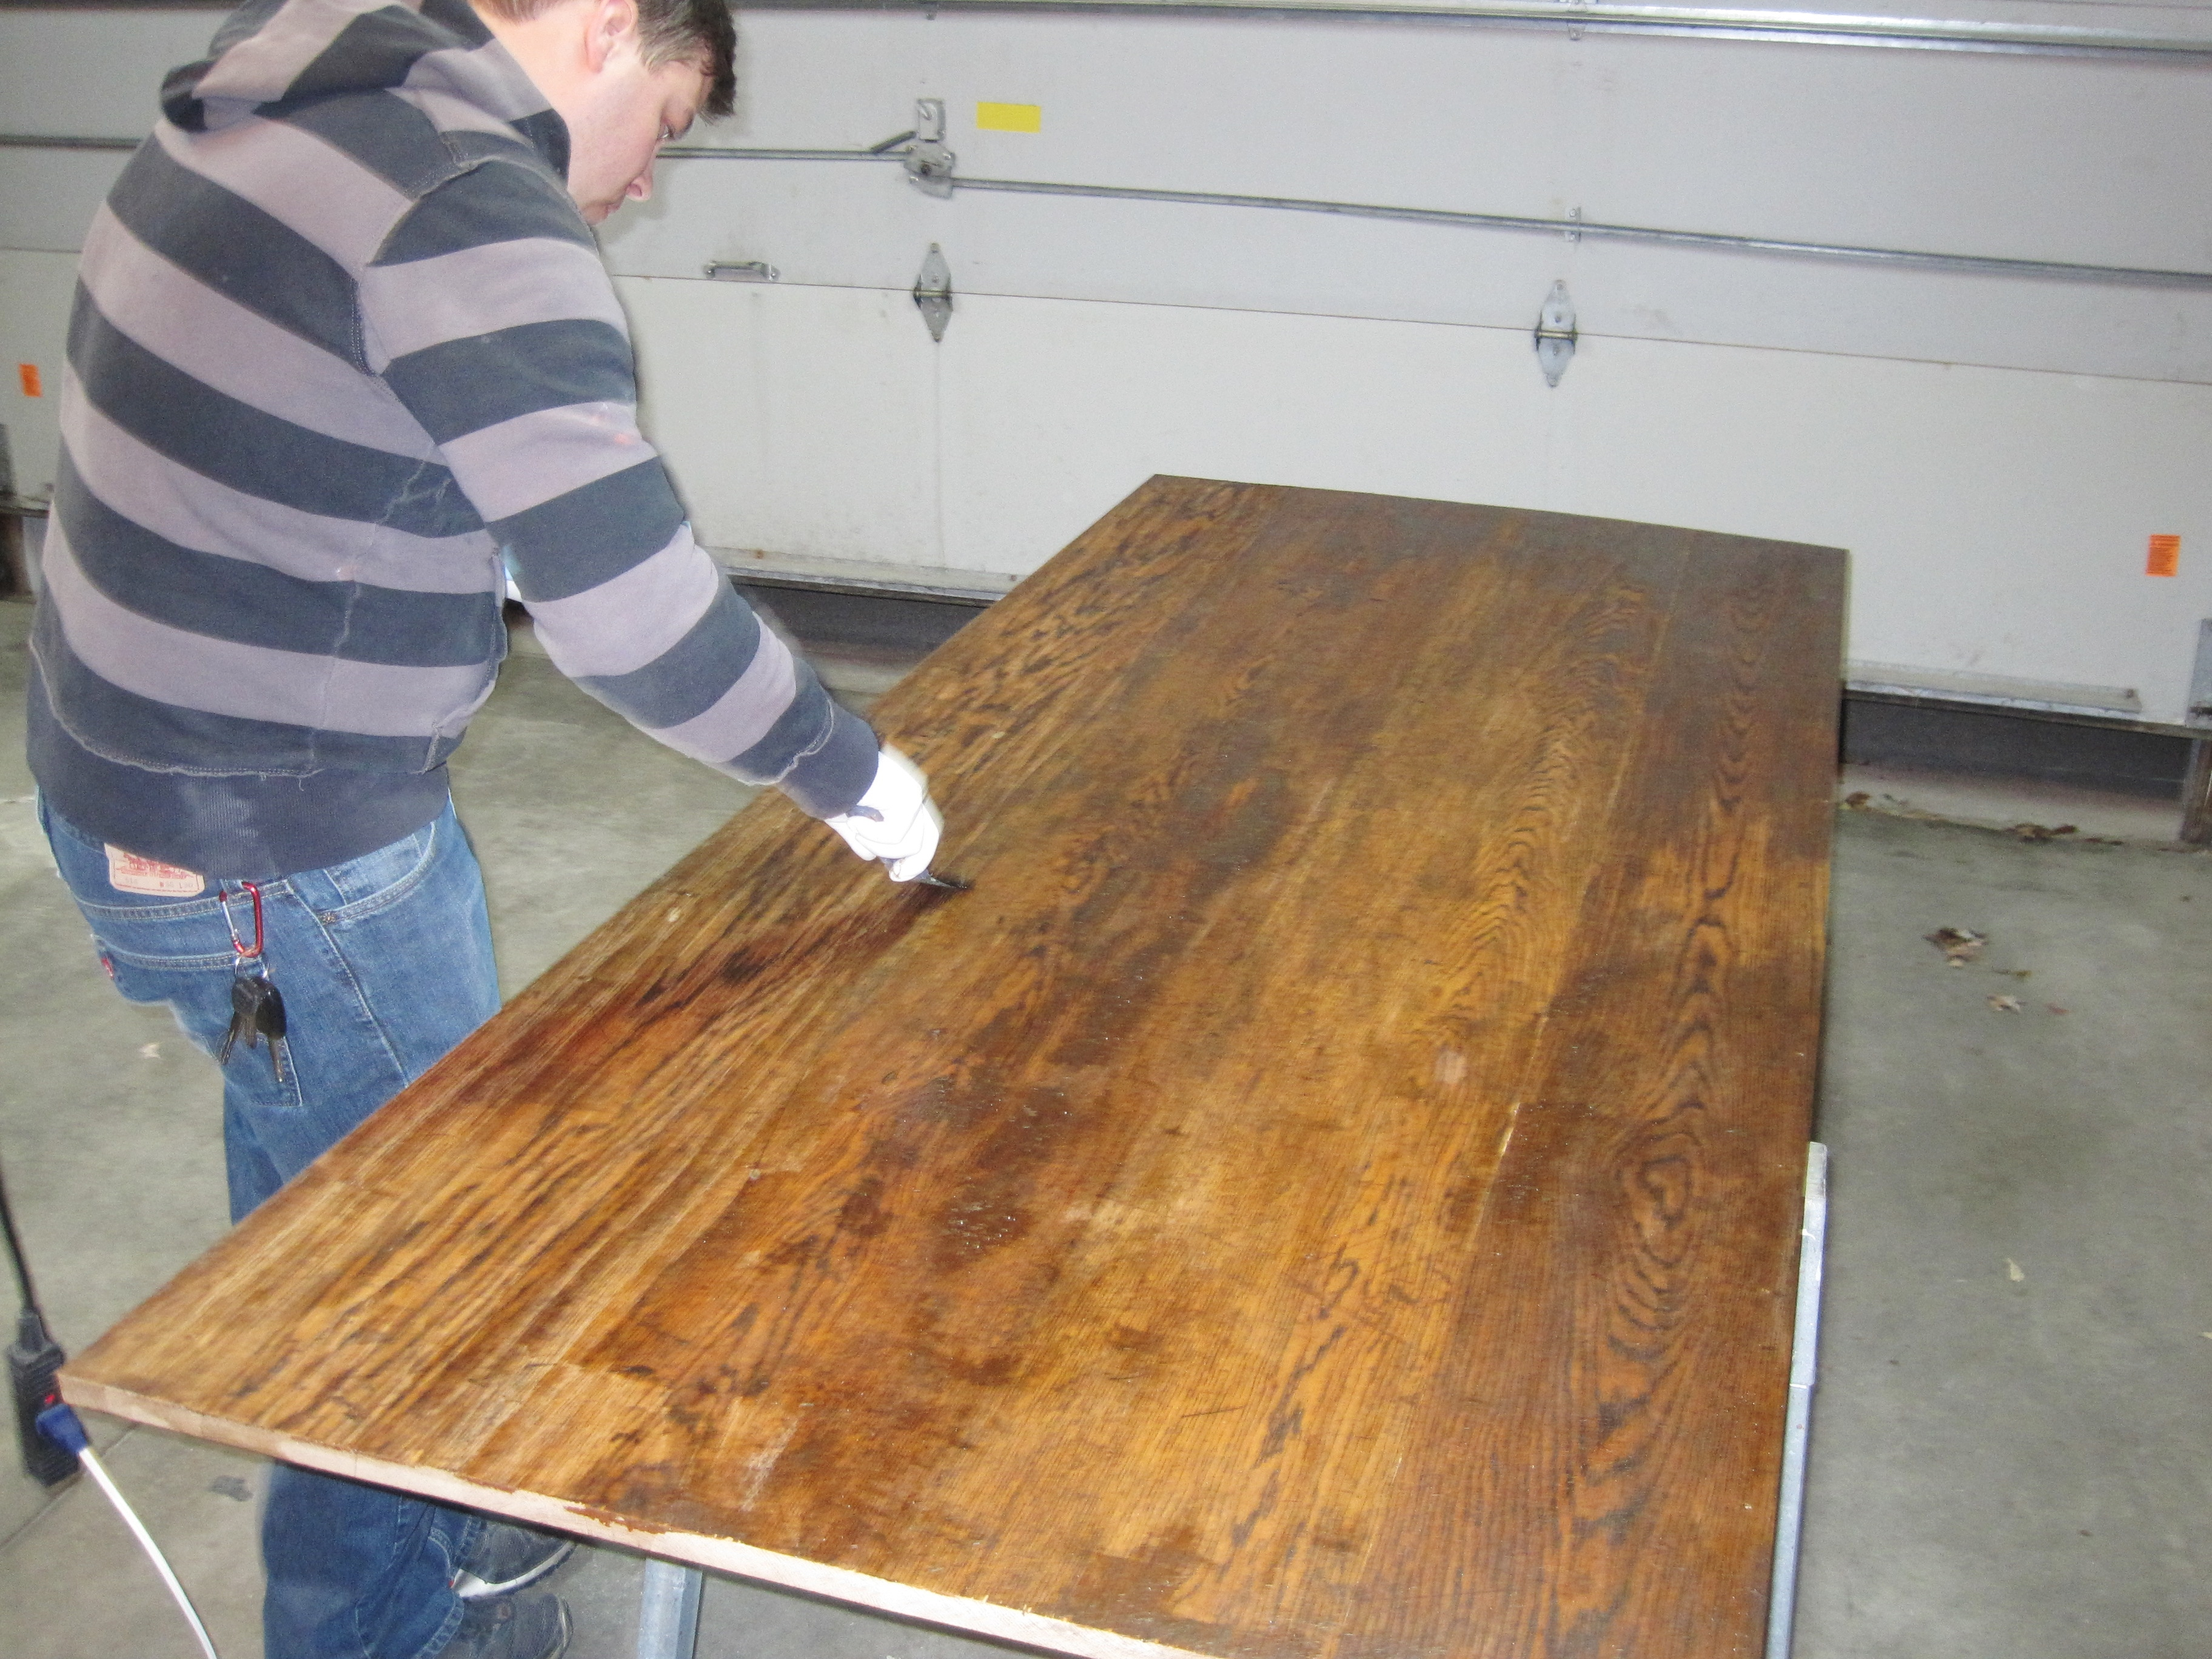 refinishing wood table top 3 table top progress surface solutions and stripping loving here - How To Refinish Wood Table